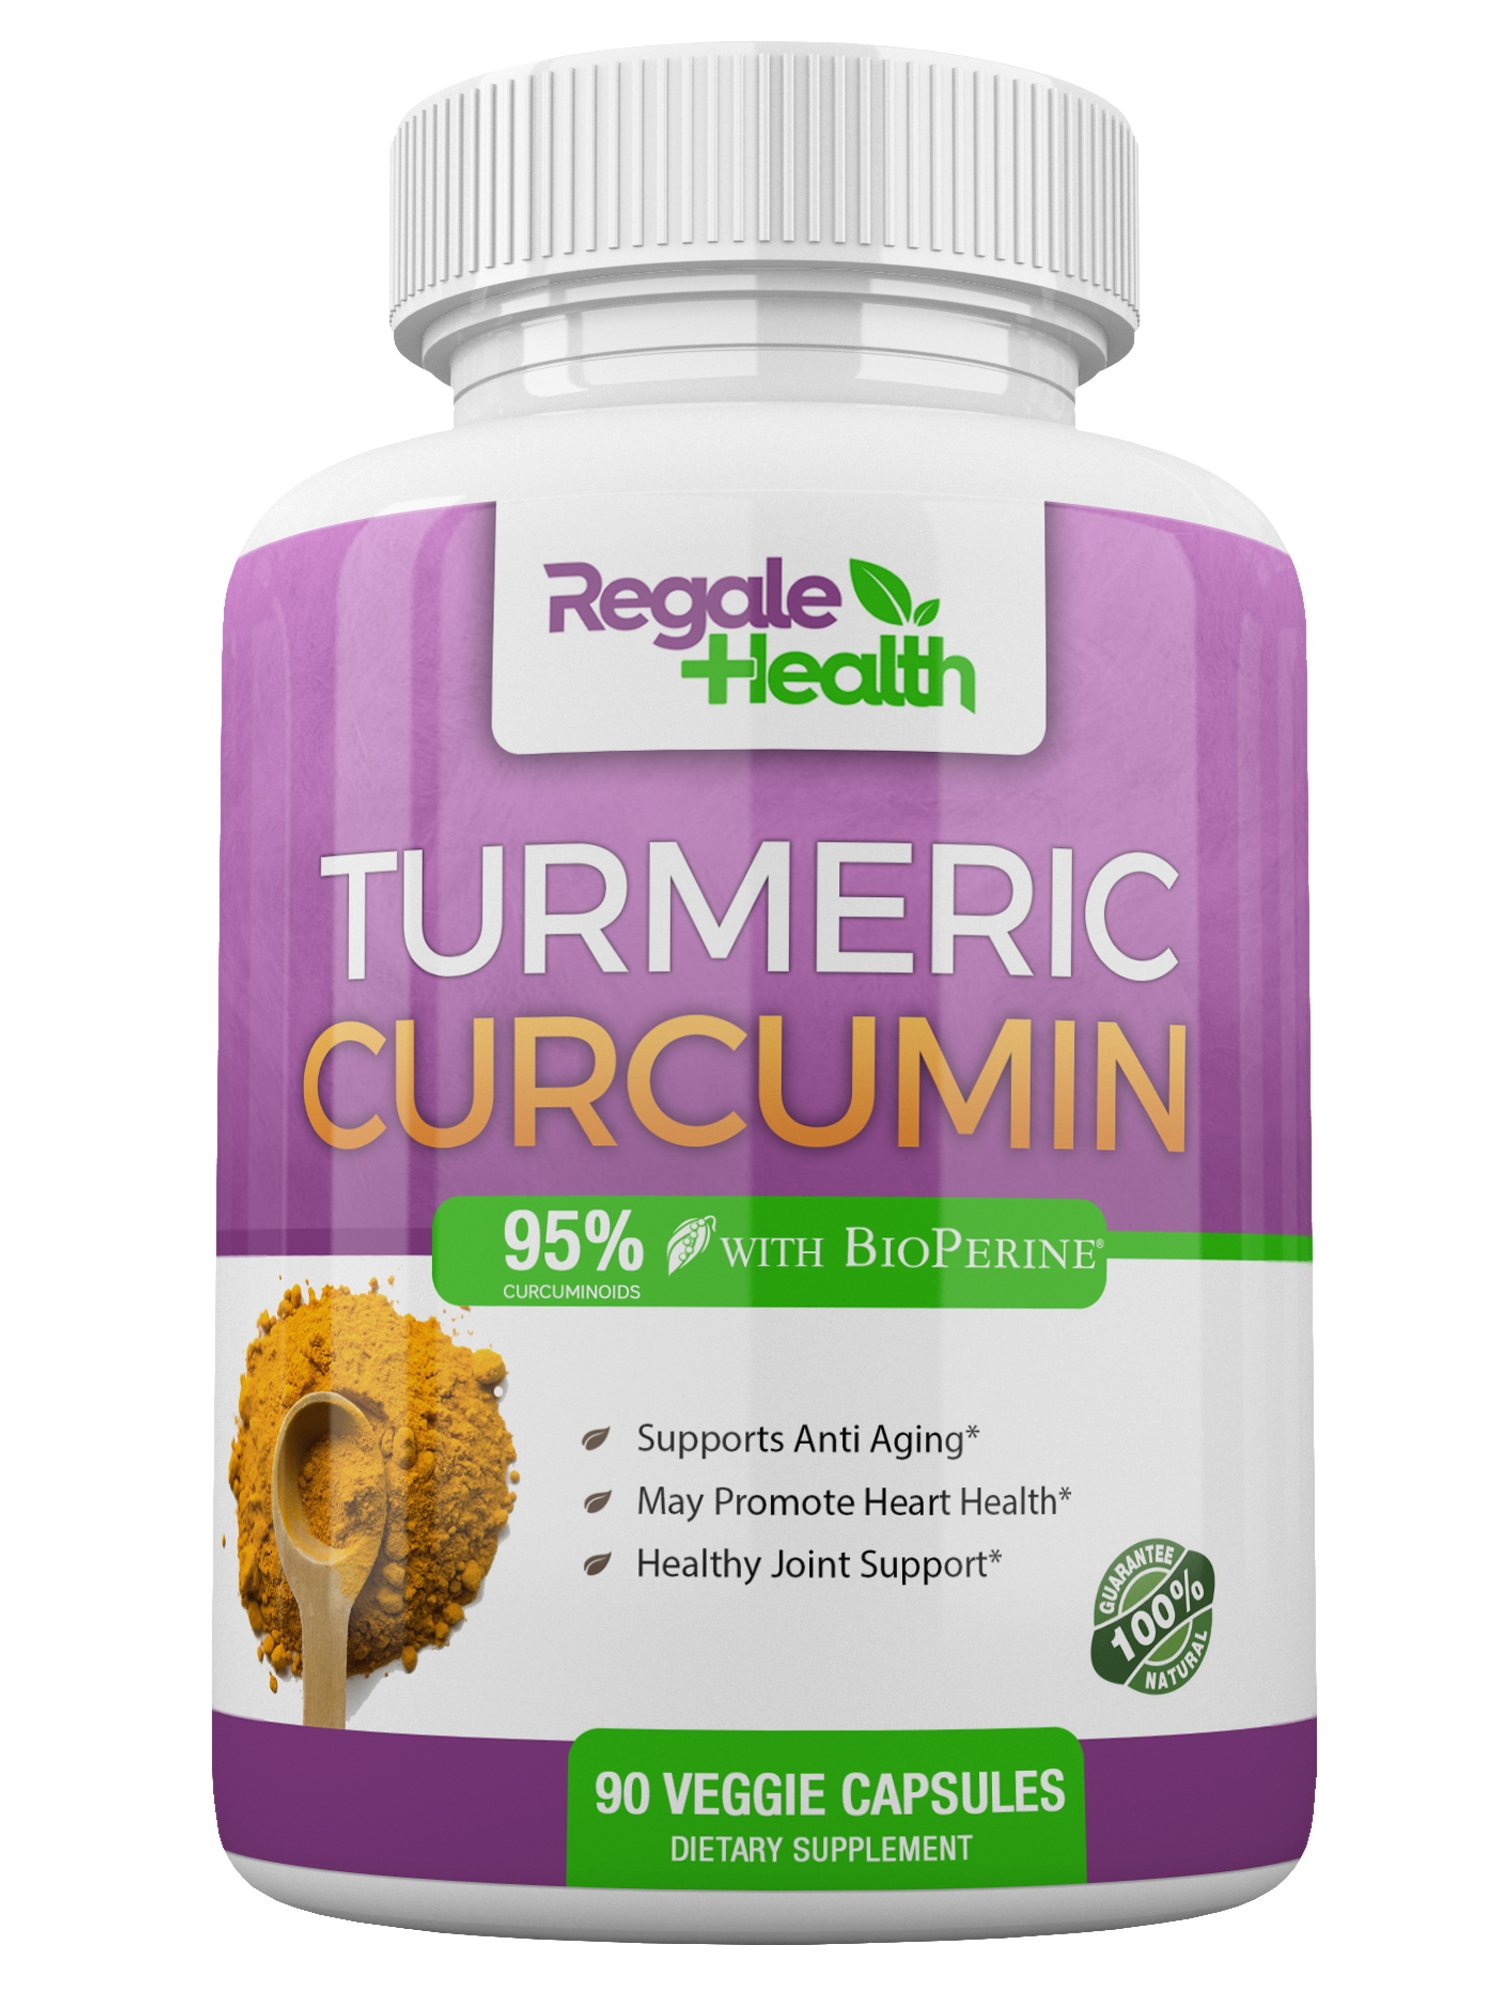 Turmeric Curcumin Supplement with Bioperine (Black Pepper) ~1950mg~High Potency 95% Curcuminoids~Joint Pain Relief Anti-inflammatory Antioxidant by Regale Health~90 Capsules~Non GMO Gluten Free